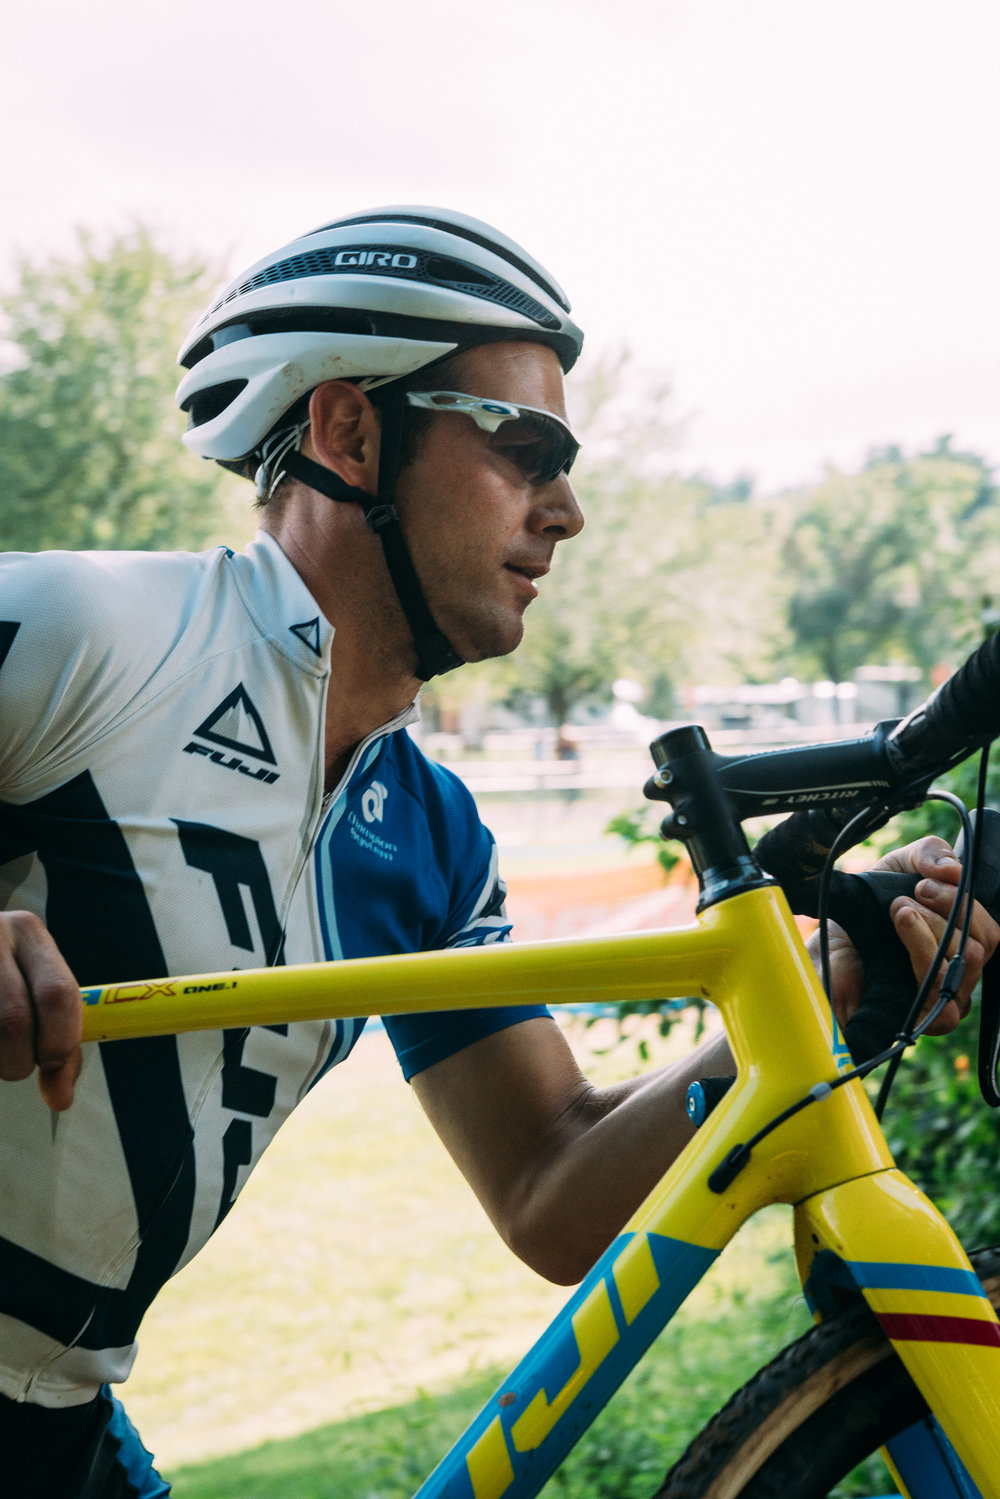 photo-rhetoric-to-be-determined-nittany-cyclocross-1177.jpg